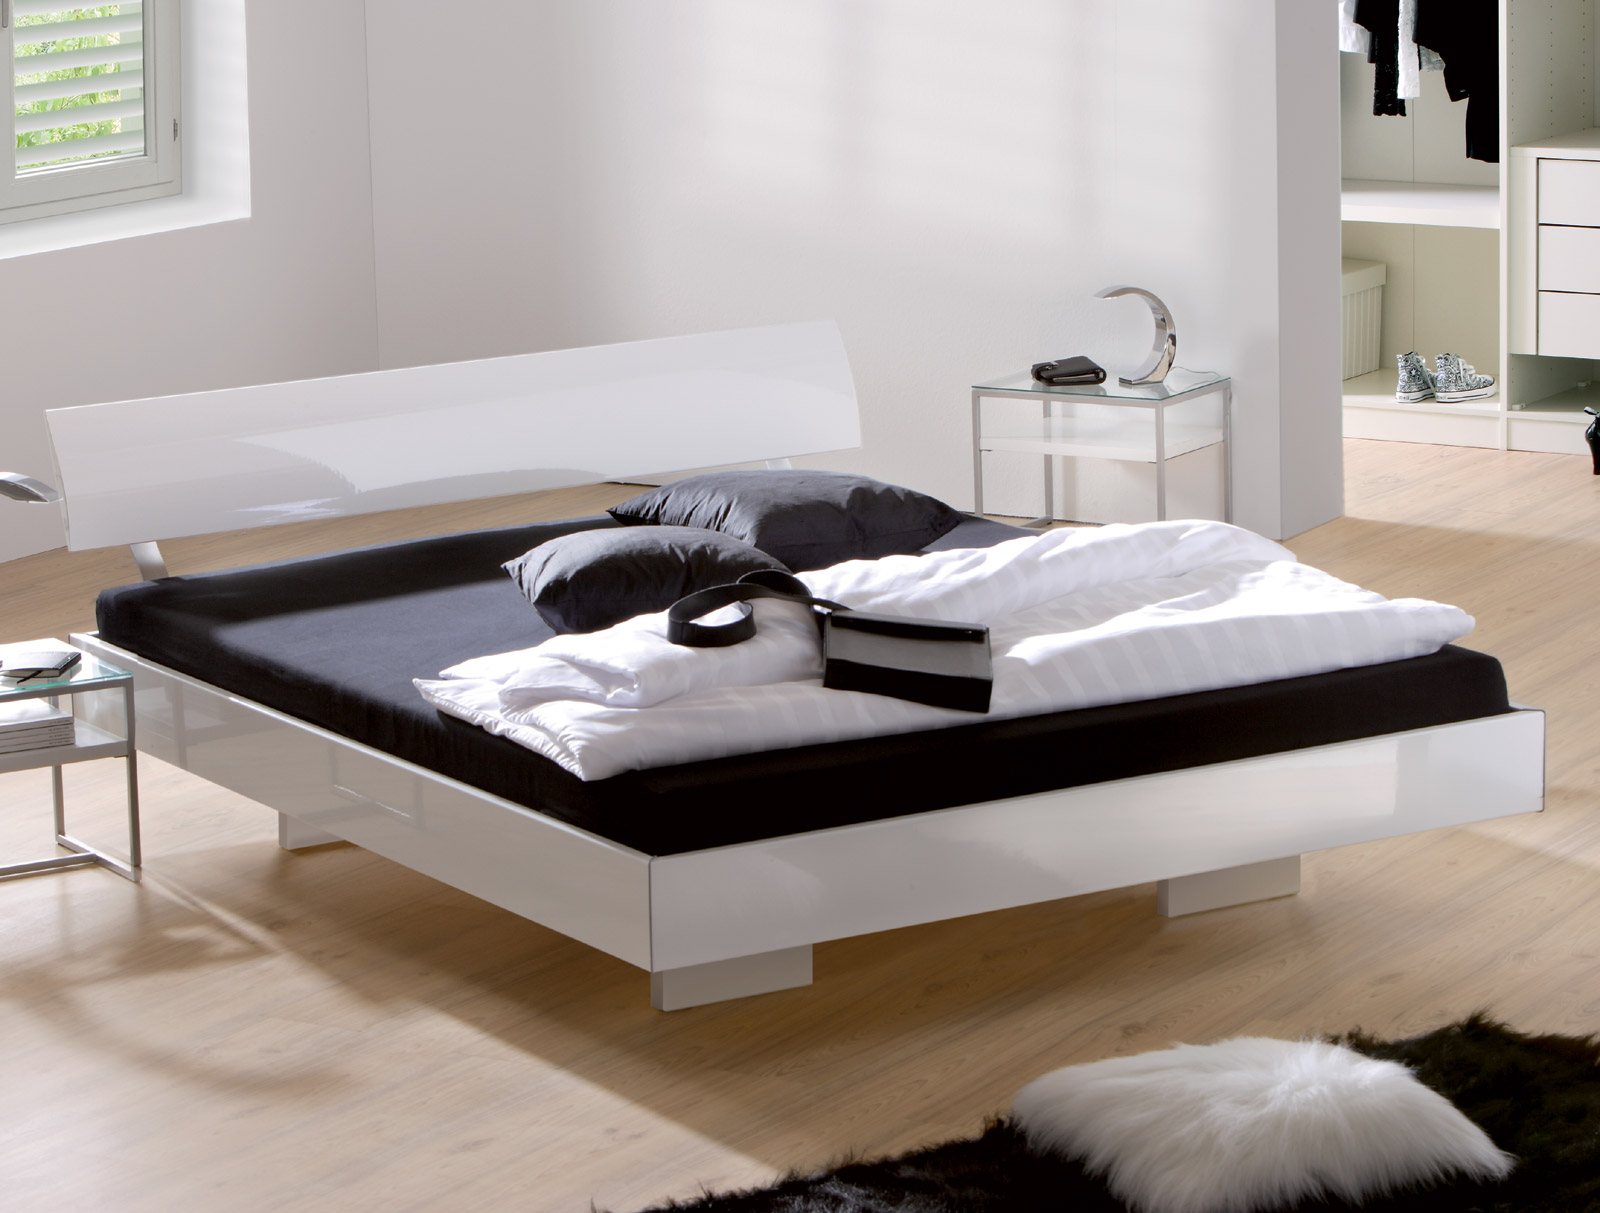 doppelbett wei hochglanz. Black Bedroom Furniture Sets. Home Design Ideas